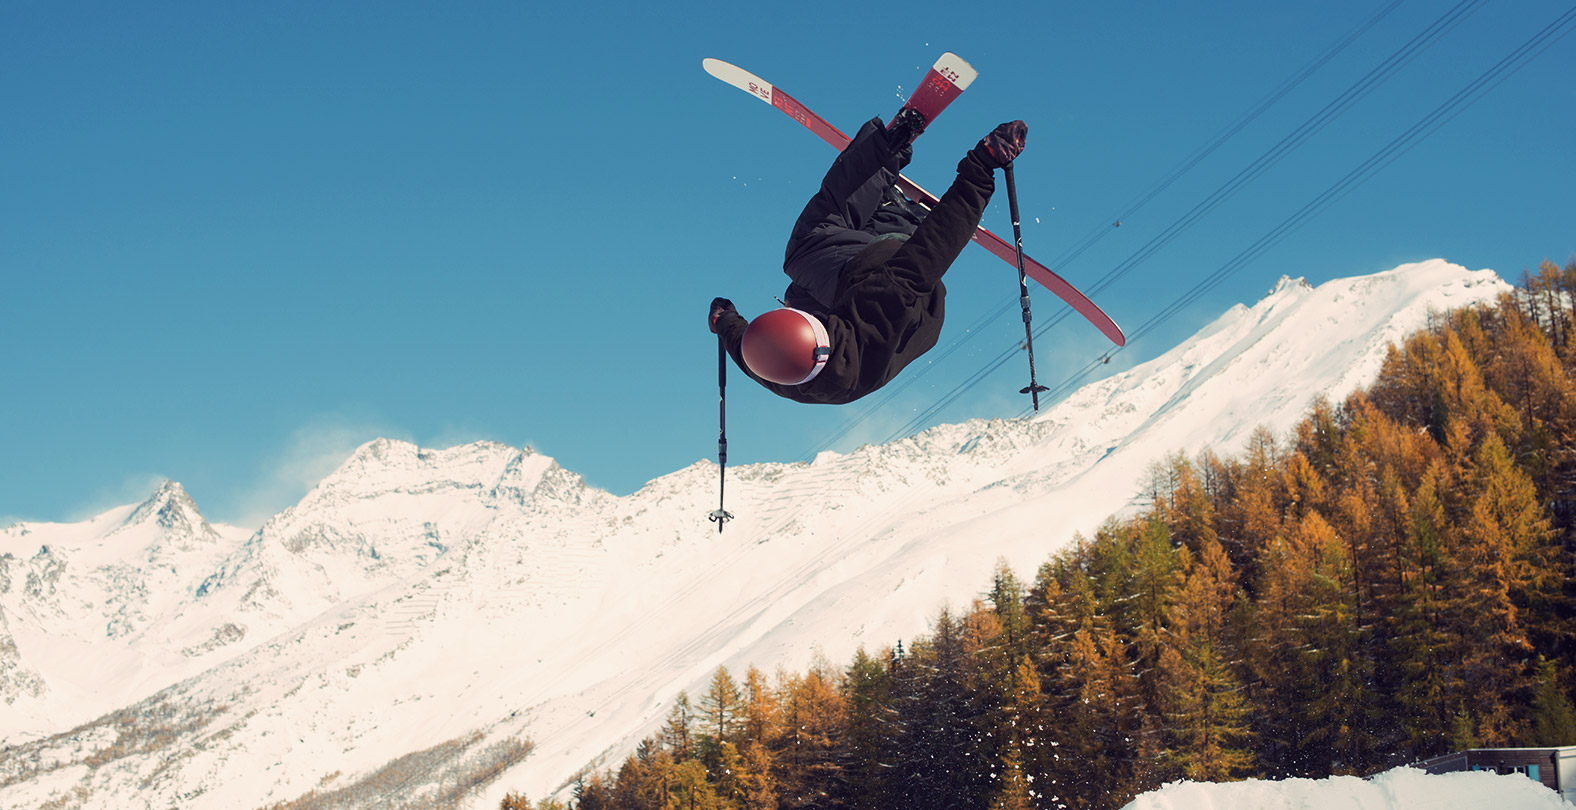 Freeskier Sampo Vallotton with a inverted 540